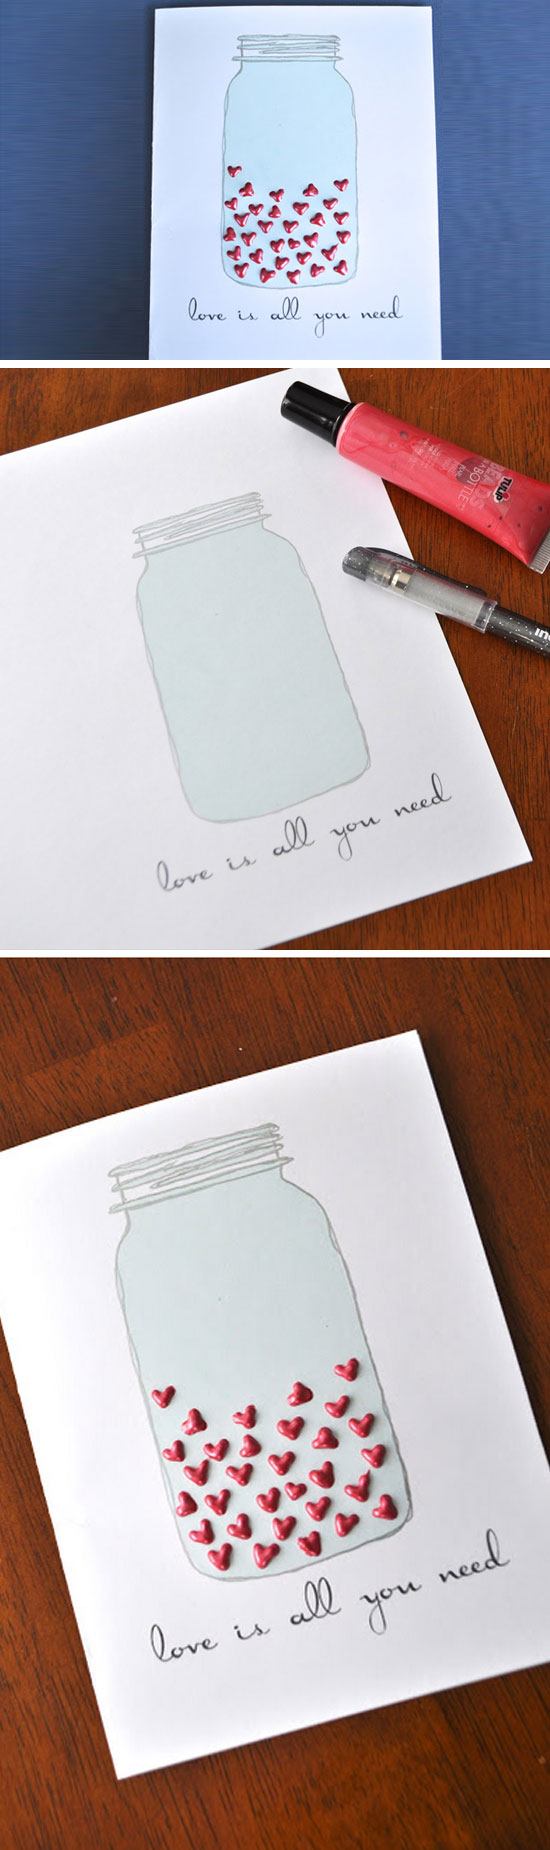 Mason Jar Heart Card.